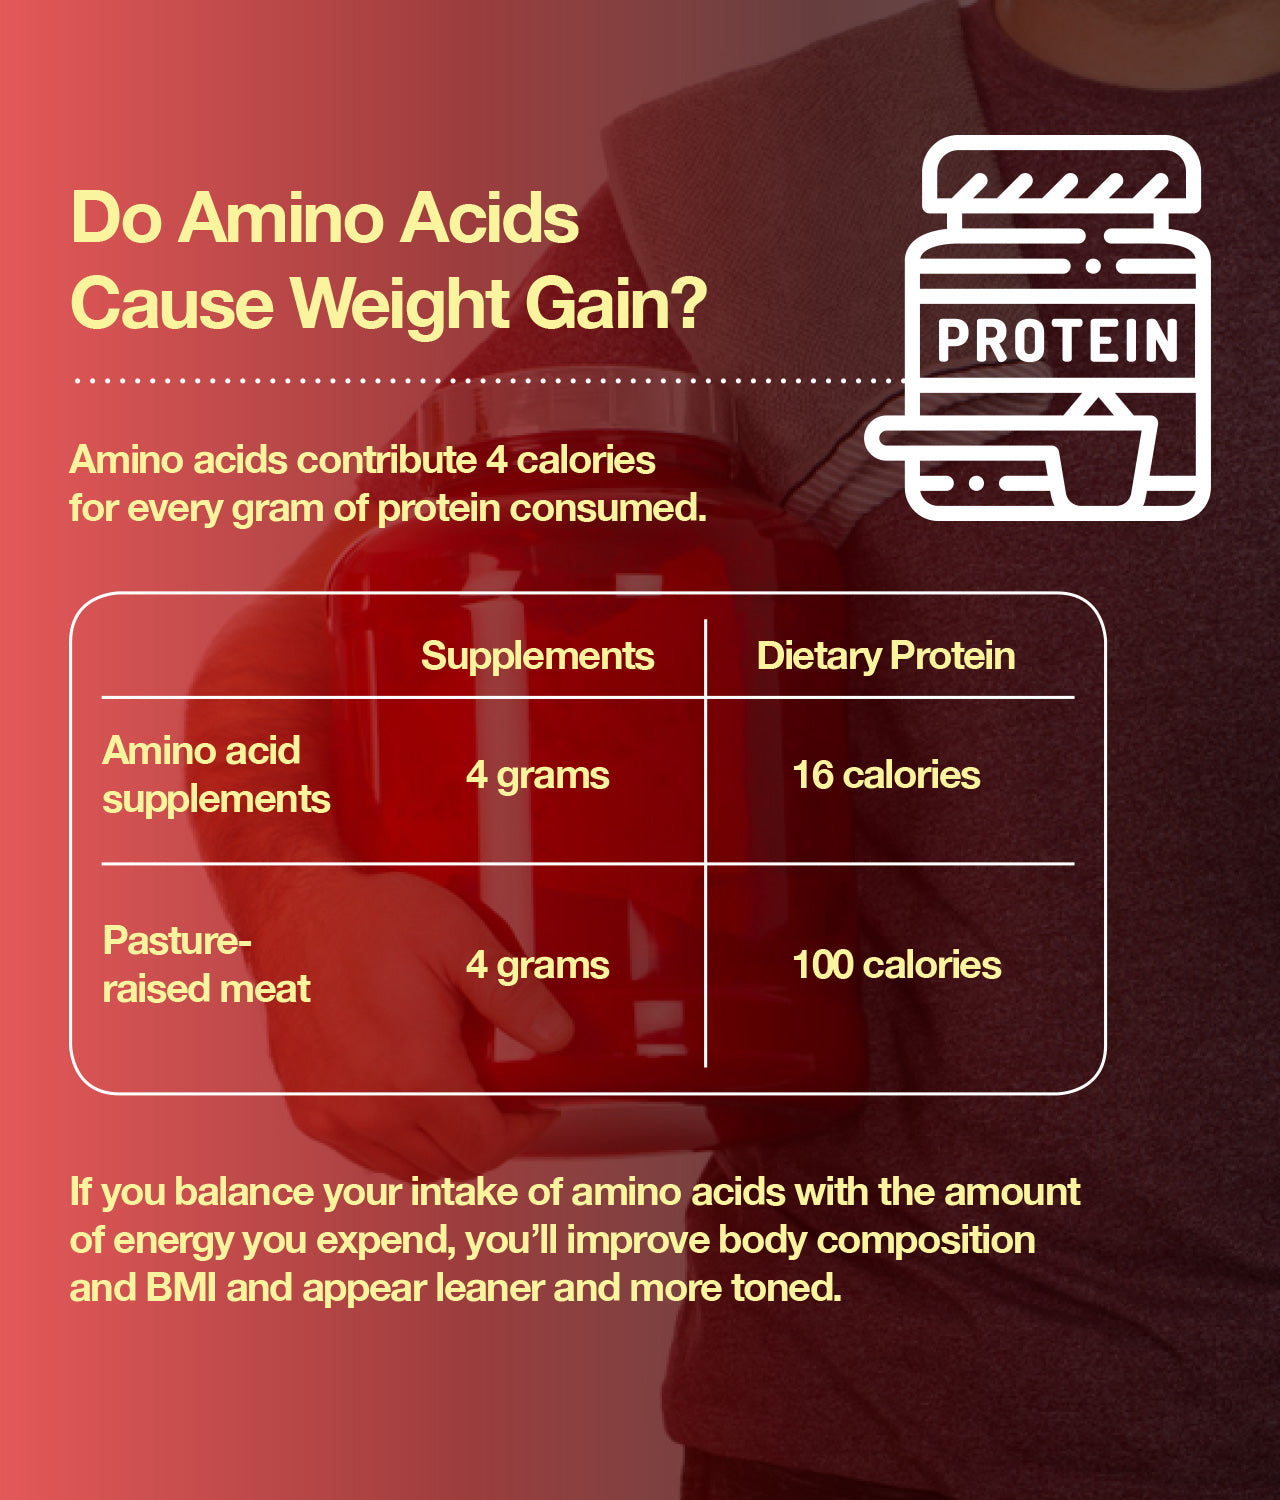 I don't think amino acids cause weight gain, unless you are eating an ultra-high-protein diet and not burning off the excess amino acids. I do think amino acids are helping you maintain and build muscles, which may cause moderate weight gain, but a better body mass index (BMI) and leaner, more toned figure.